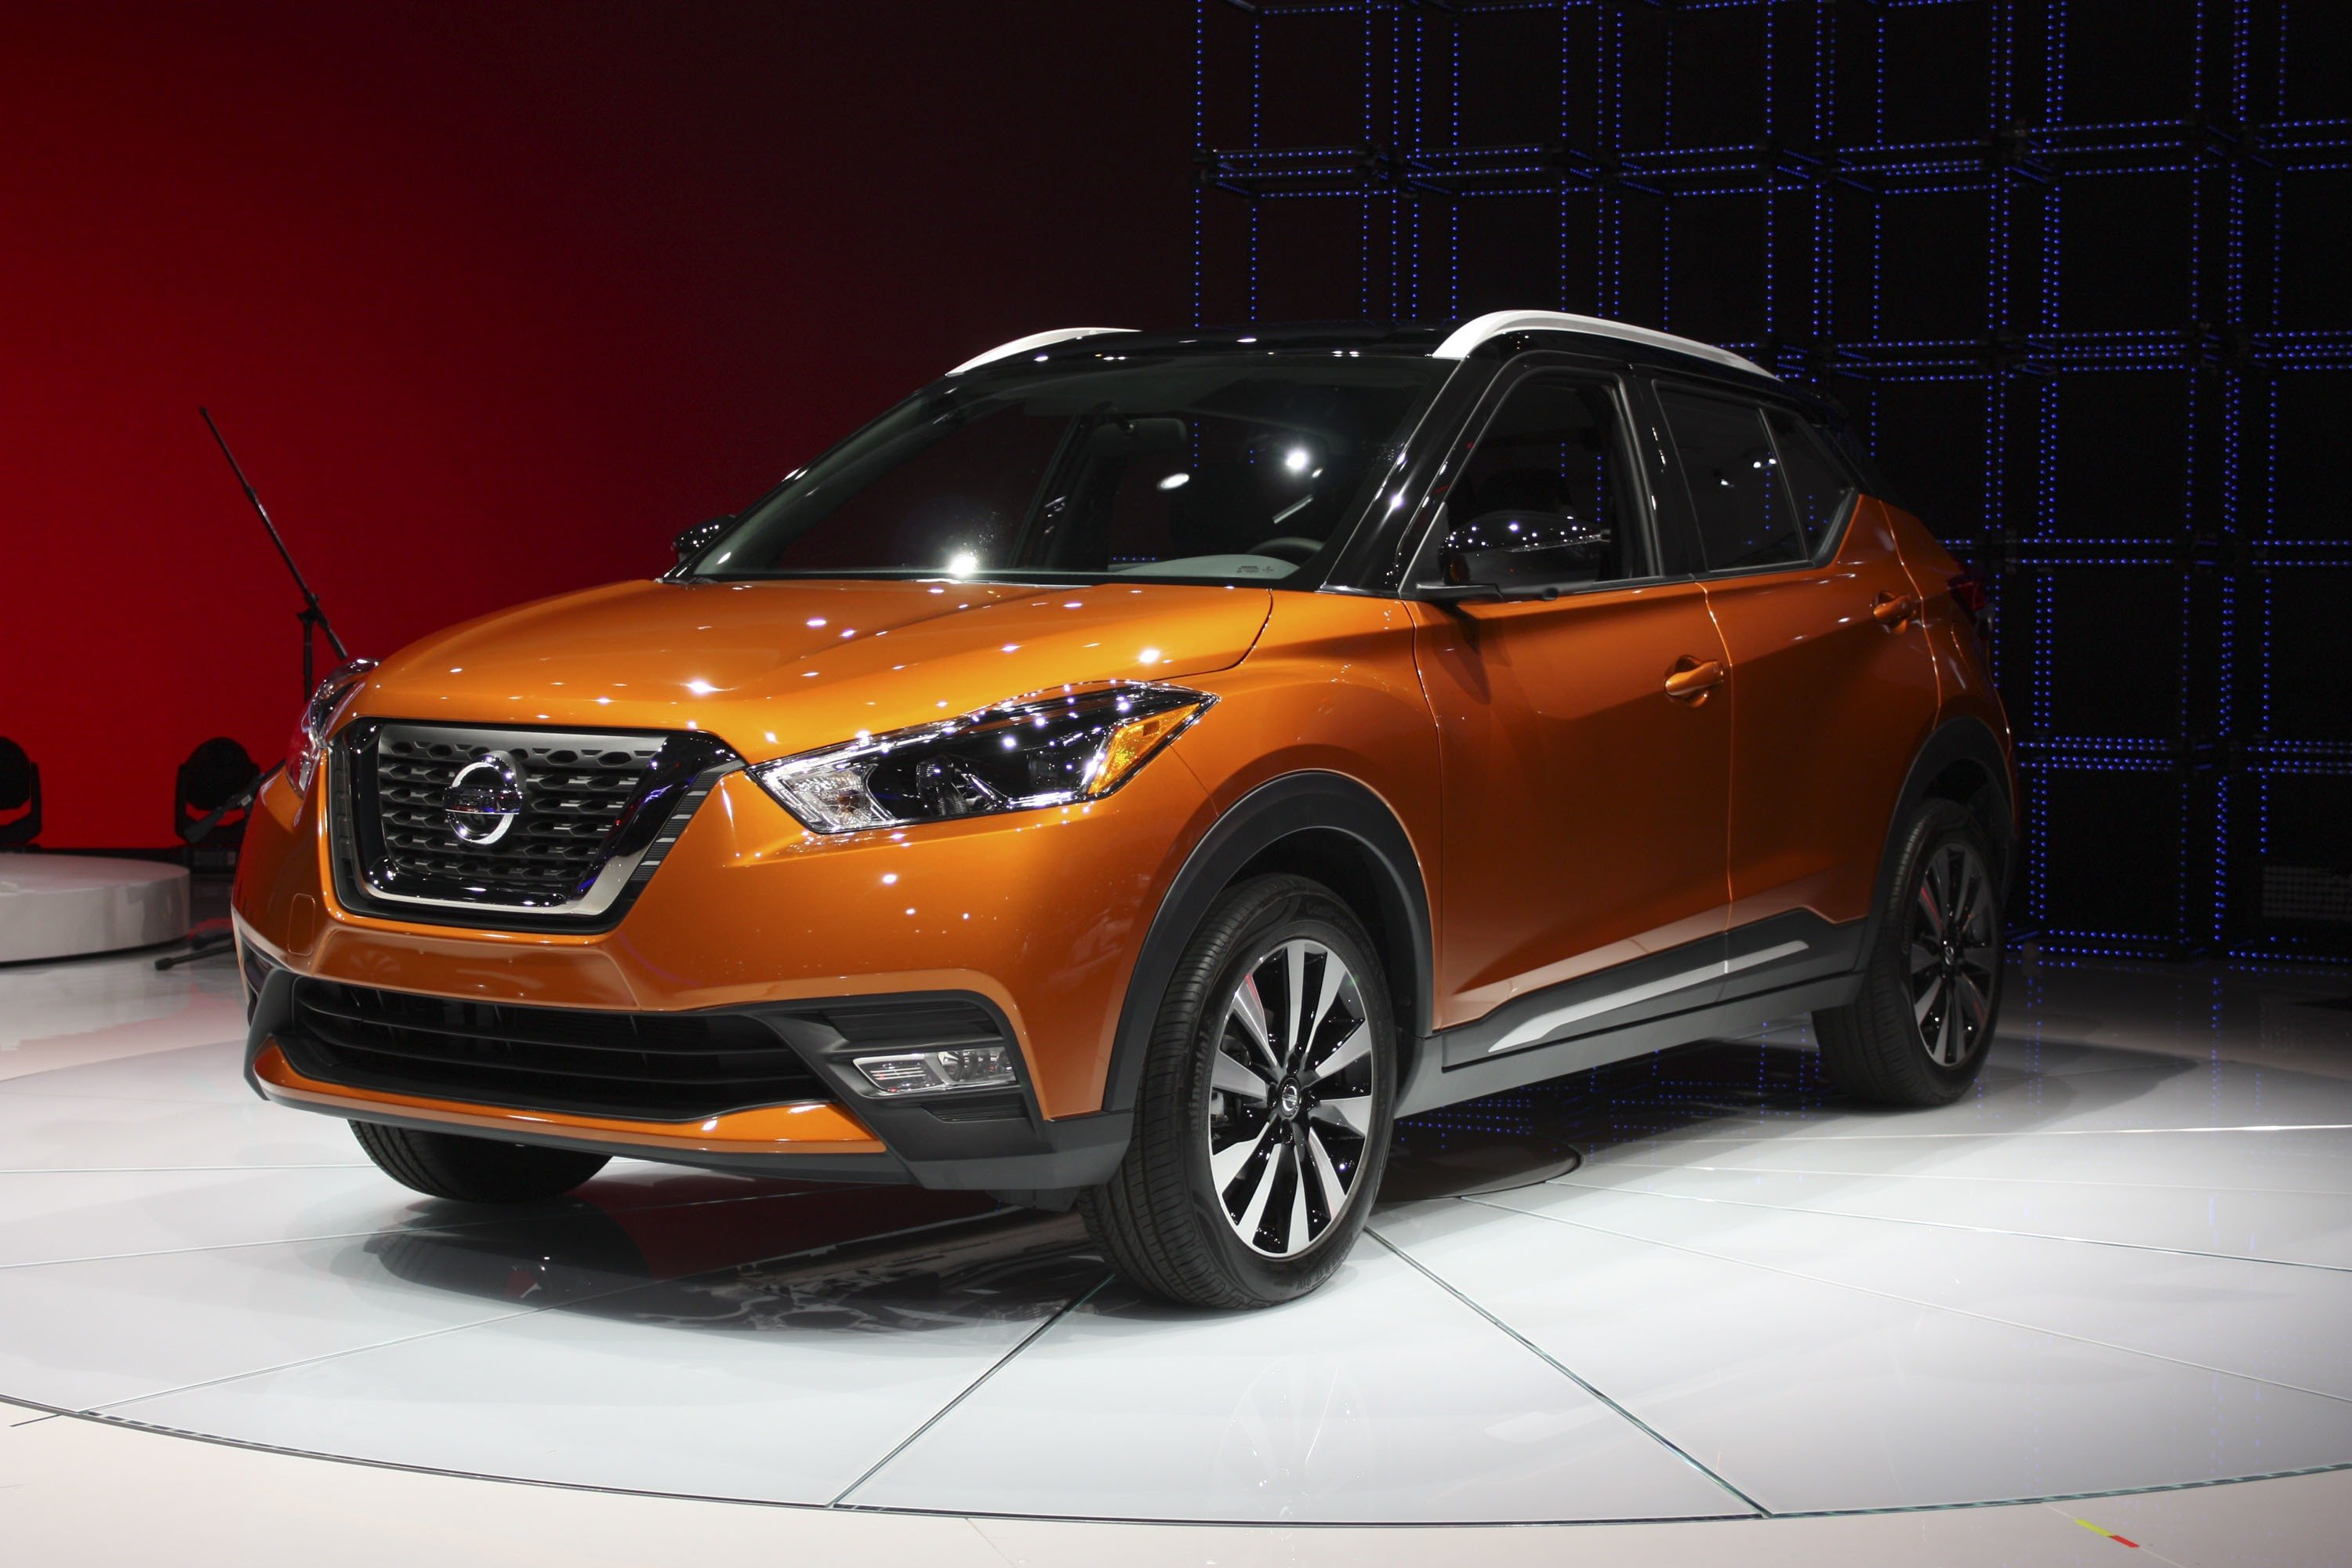 More subdued styling versus the Juke